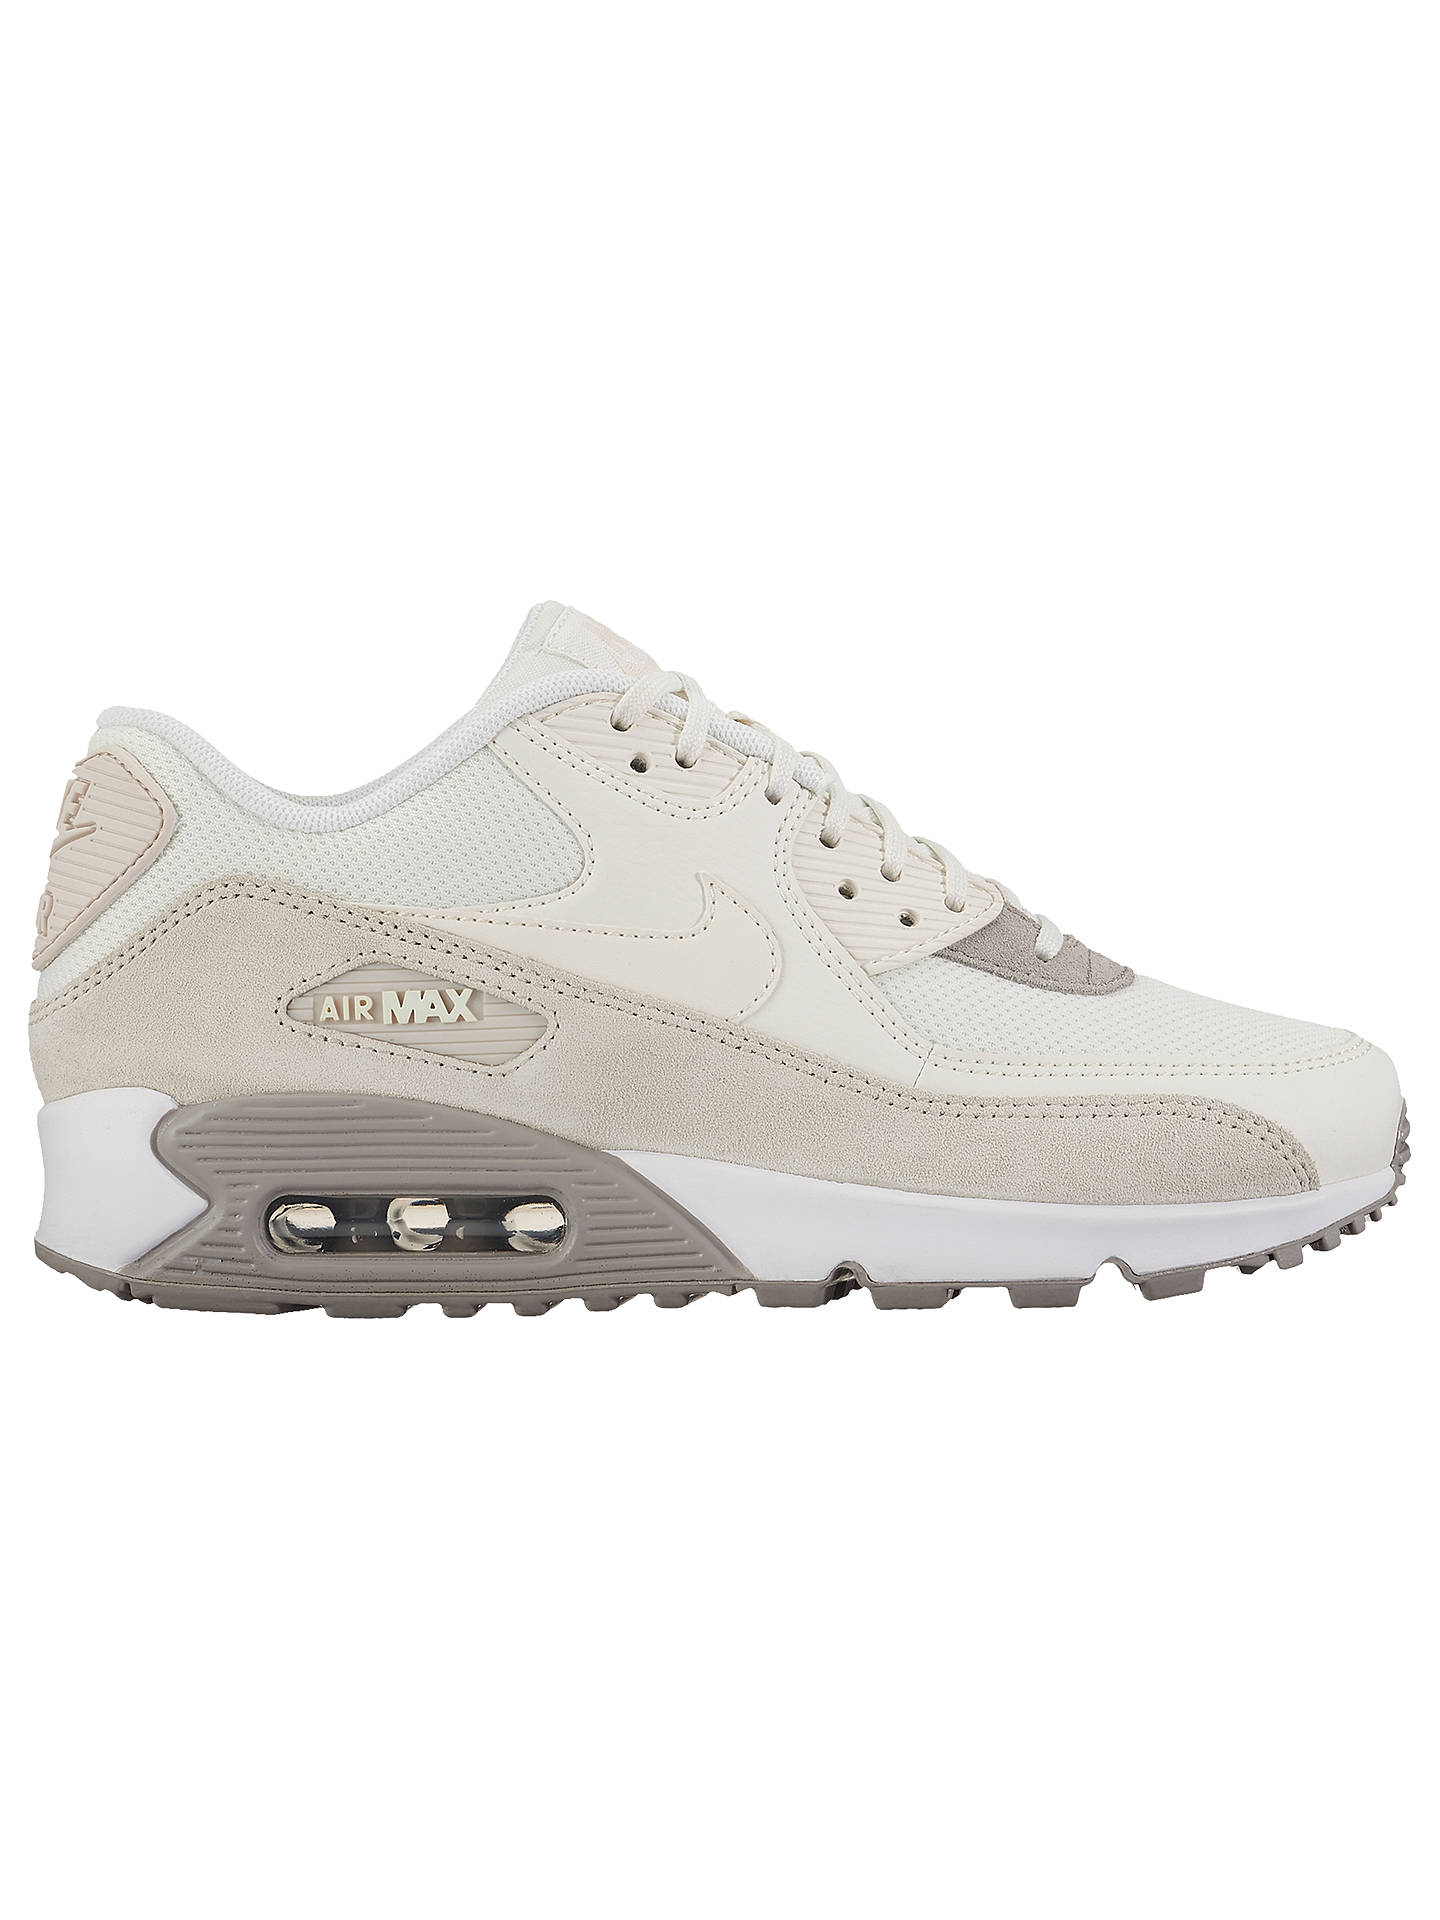 Women Nike Air Max 90 Trainers In White White Shoes